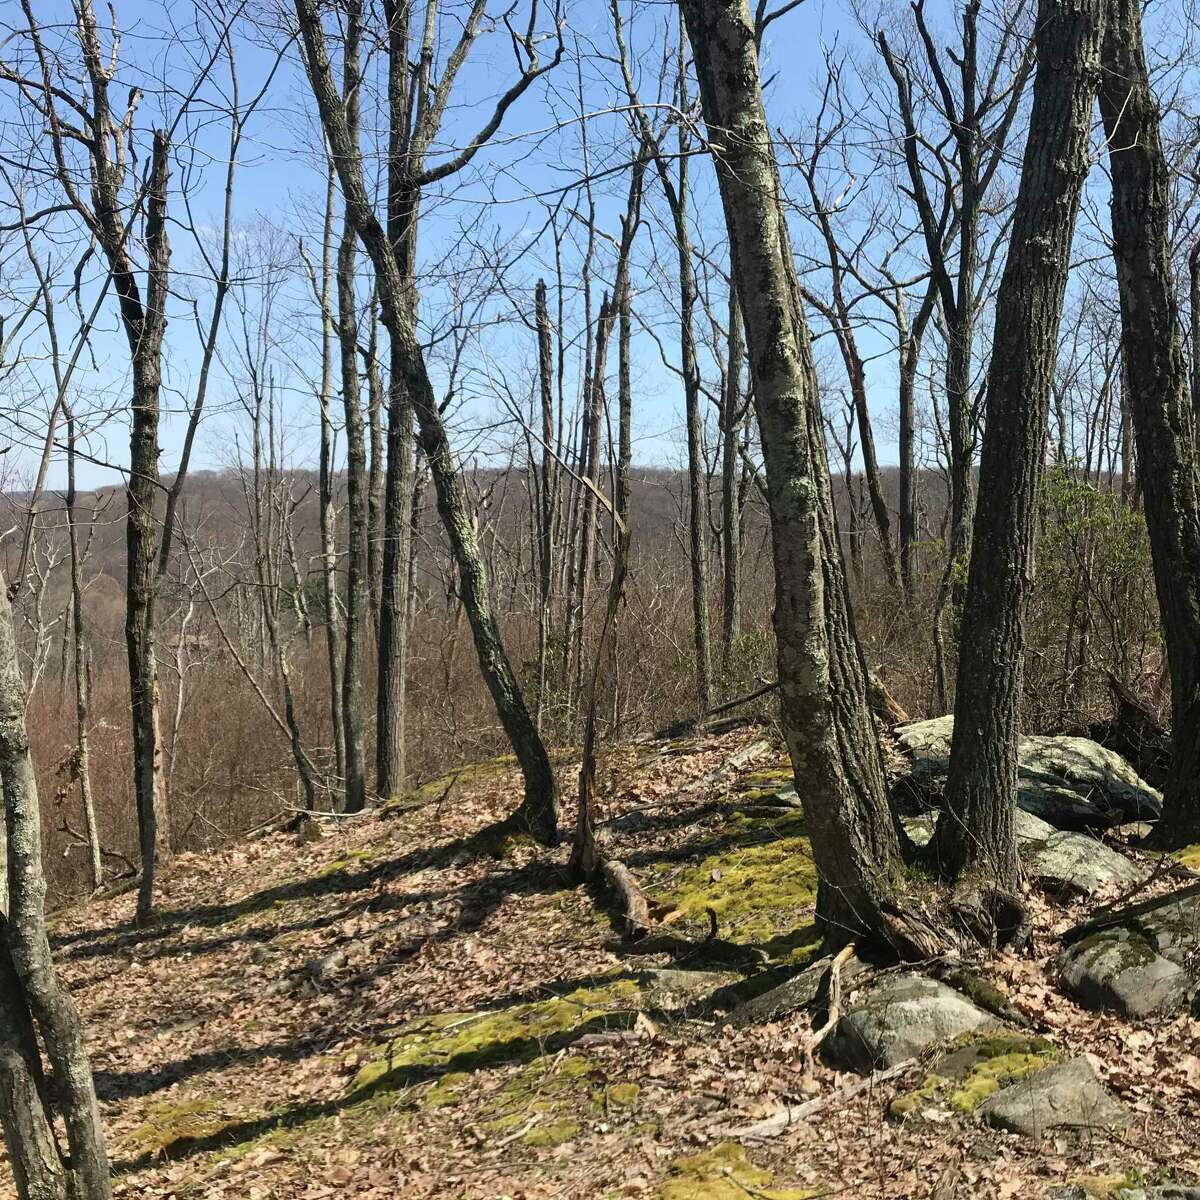 The purchase of 14 acres of woodlands off Bear Mountain Road as open space was approved by Ridgefield voters a July 15 town meeting.